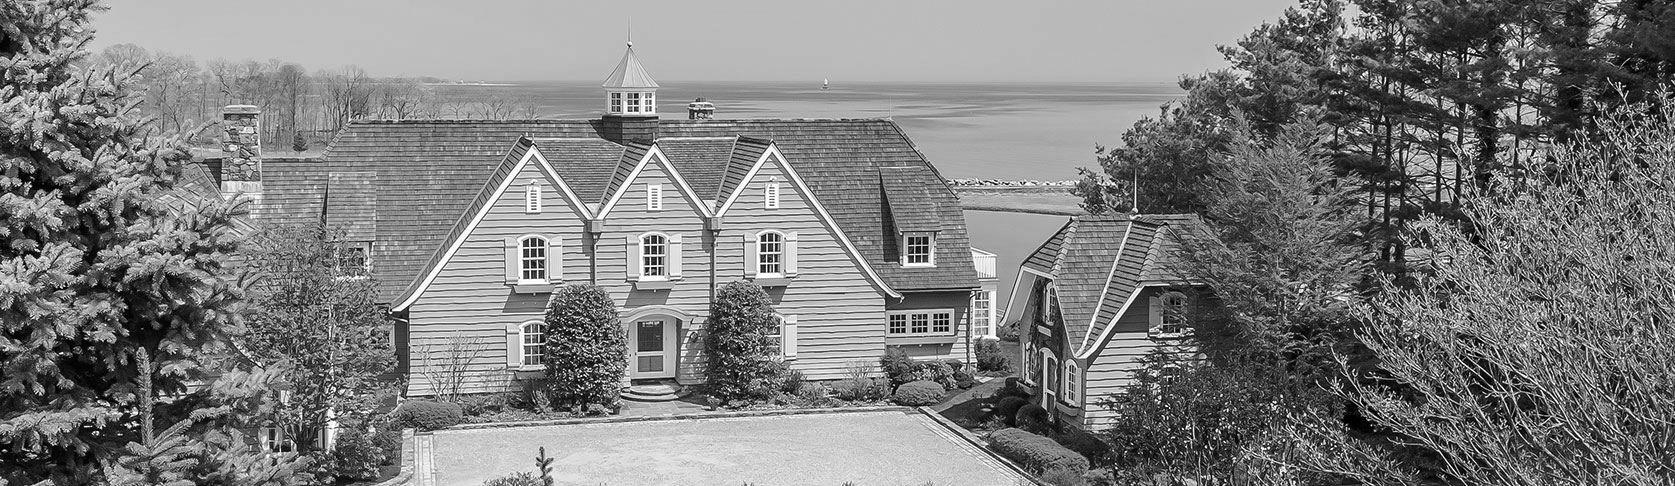 141 Long Neck Point Road, Darien, CT